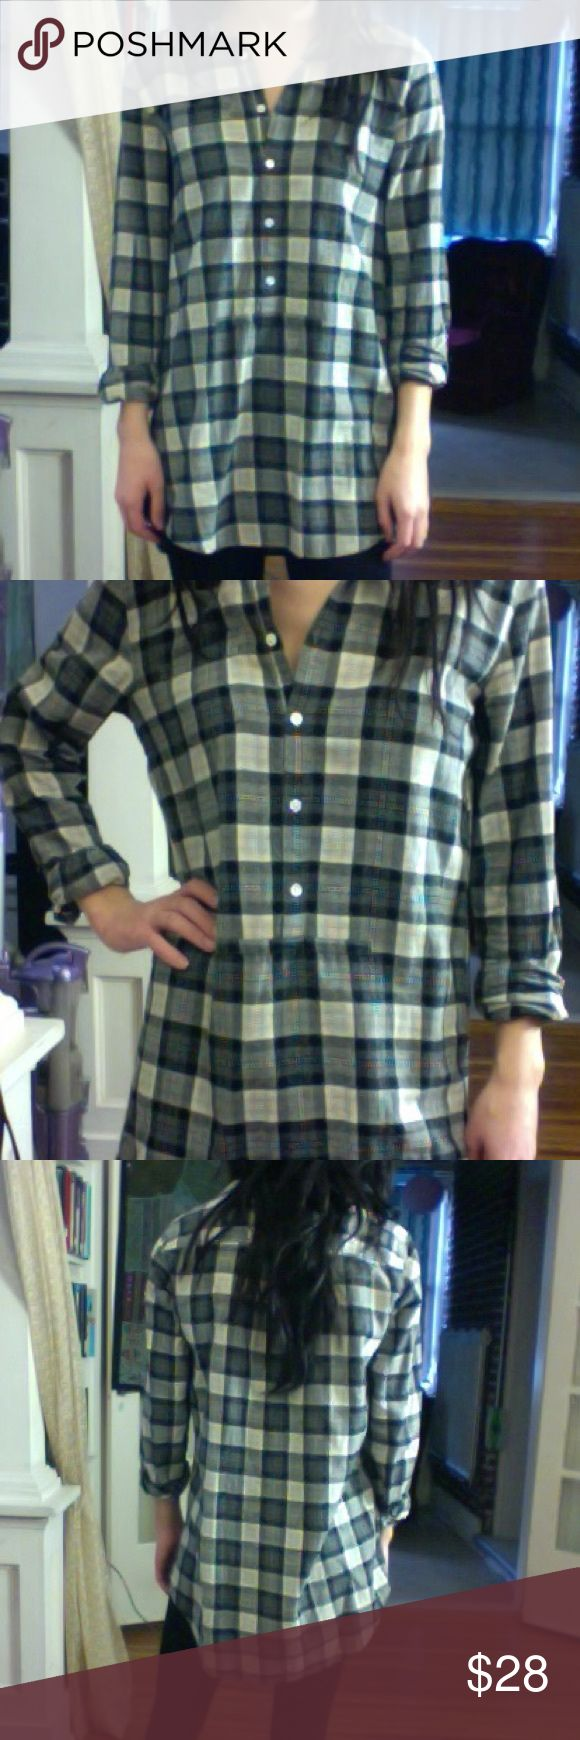 J.Crew flannel tunic Long-sleeve flannel tunic from J.Crew. A few inches longer in the back than in the front. Buttons halfway down the shirt.  Black and gray plaid pattern. Tag says x-small, but definitely fits like a small. Absolutely perfect with leggings! Like-new condition. J. Crew Tops Tunics